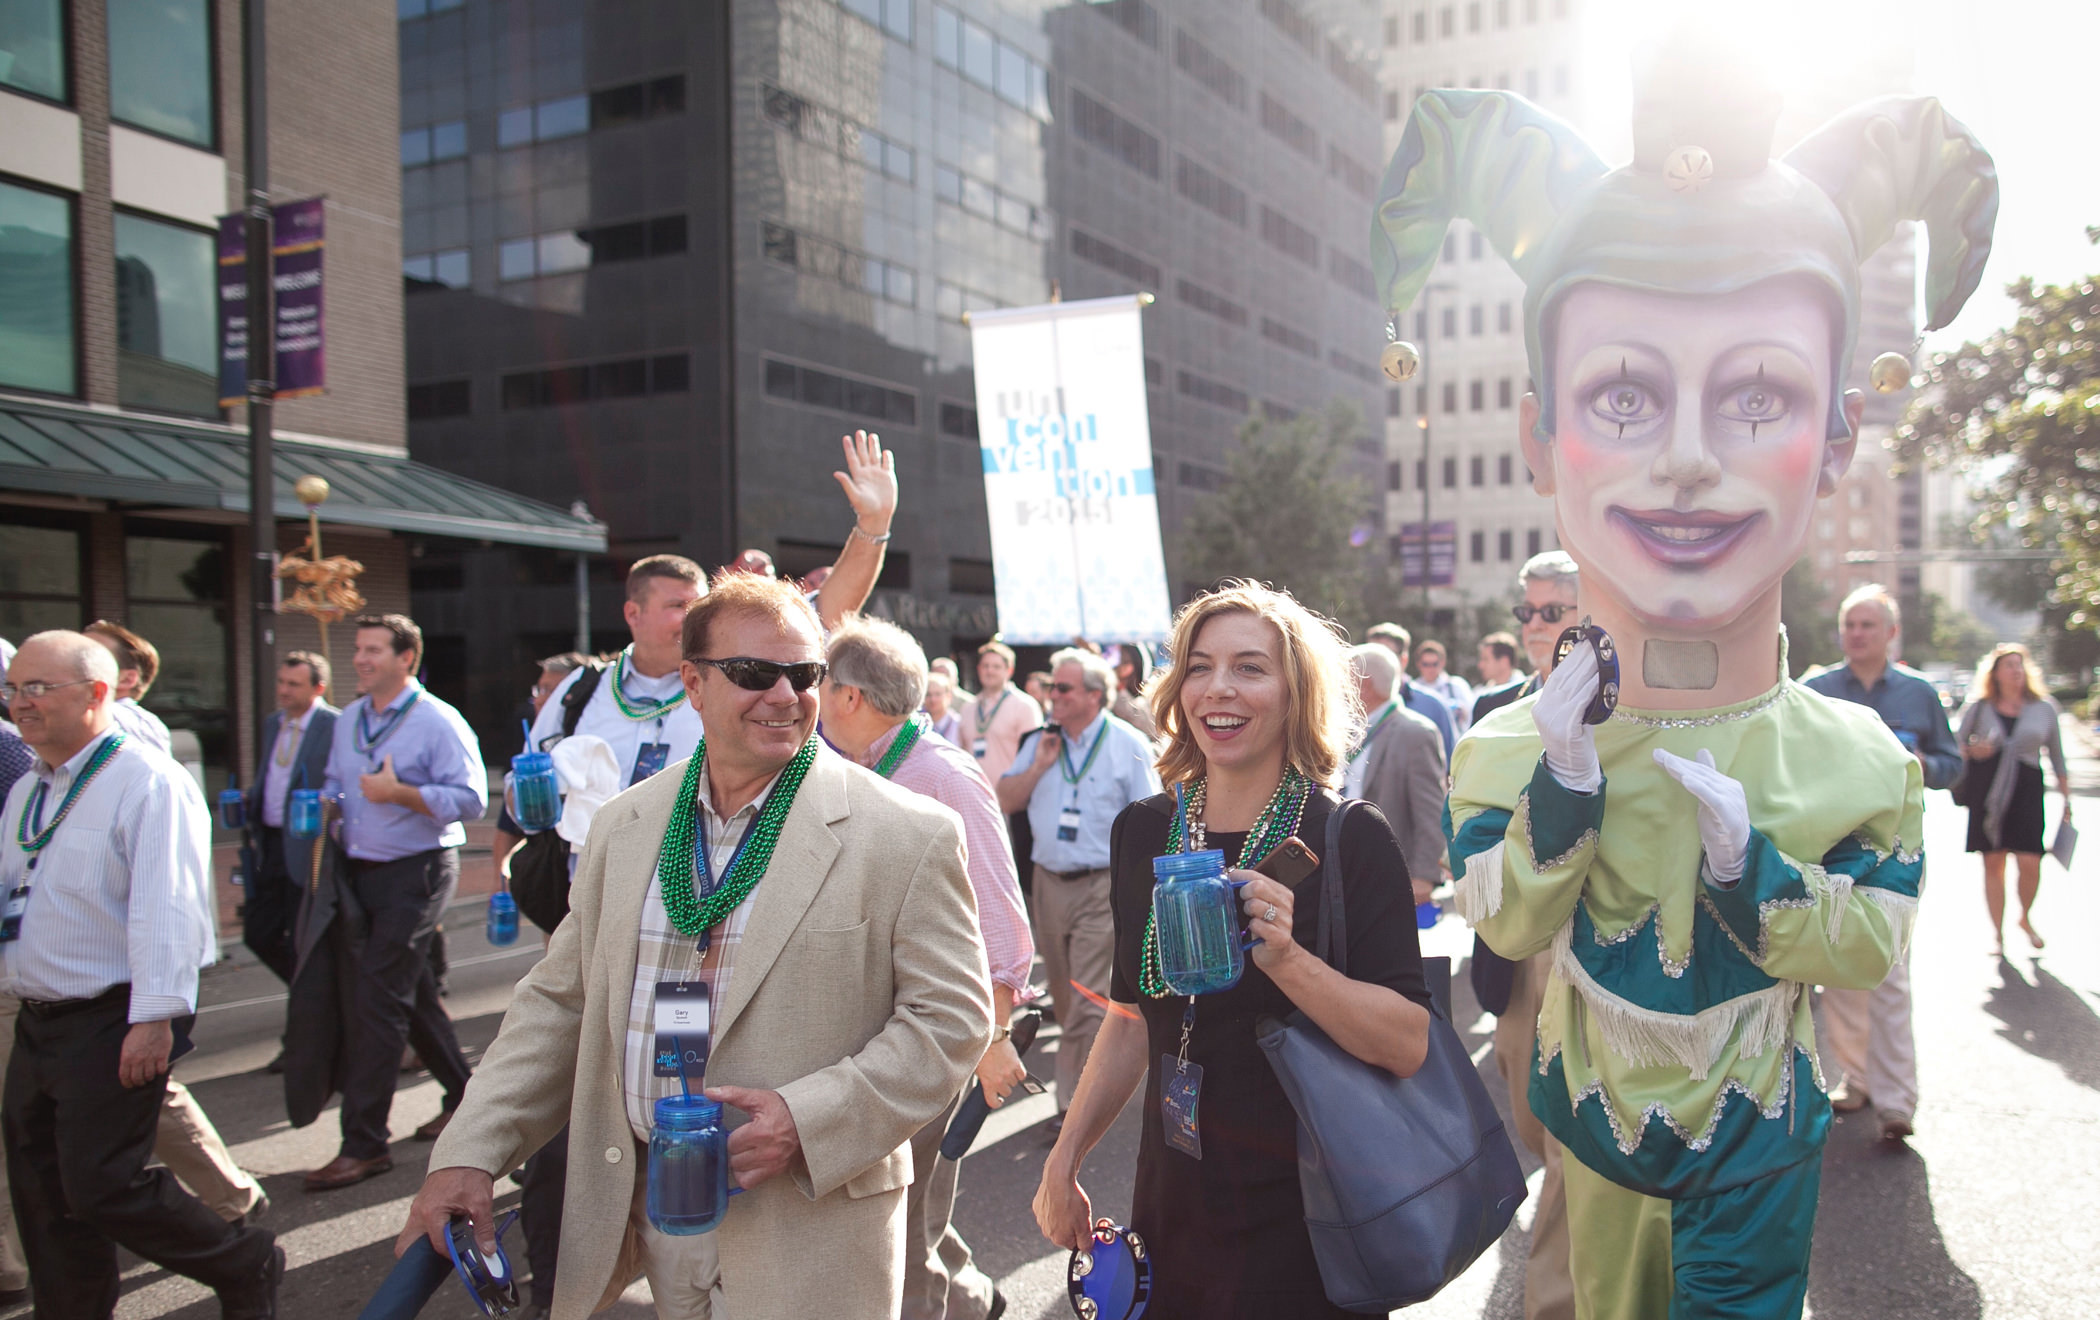 2015 KCG Uncon client event attendees parade on a New Orleans street with a Mardi Gras-style puppet figure.